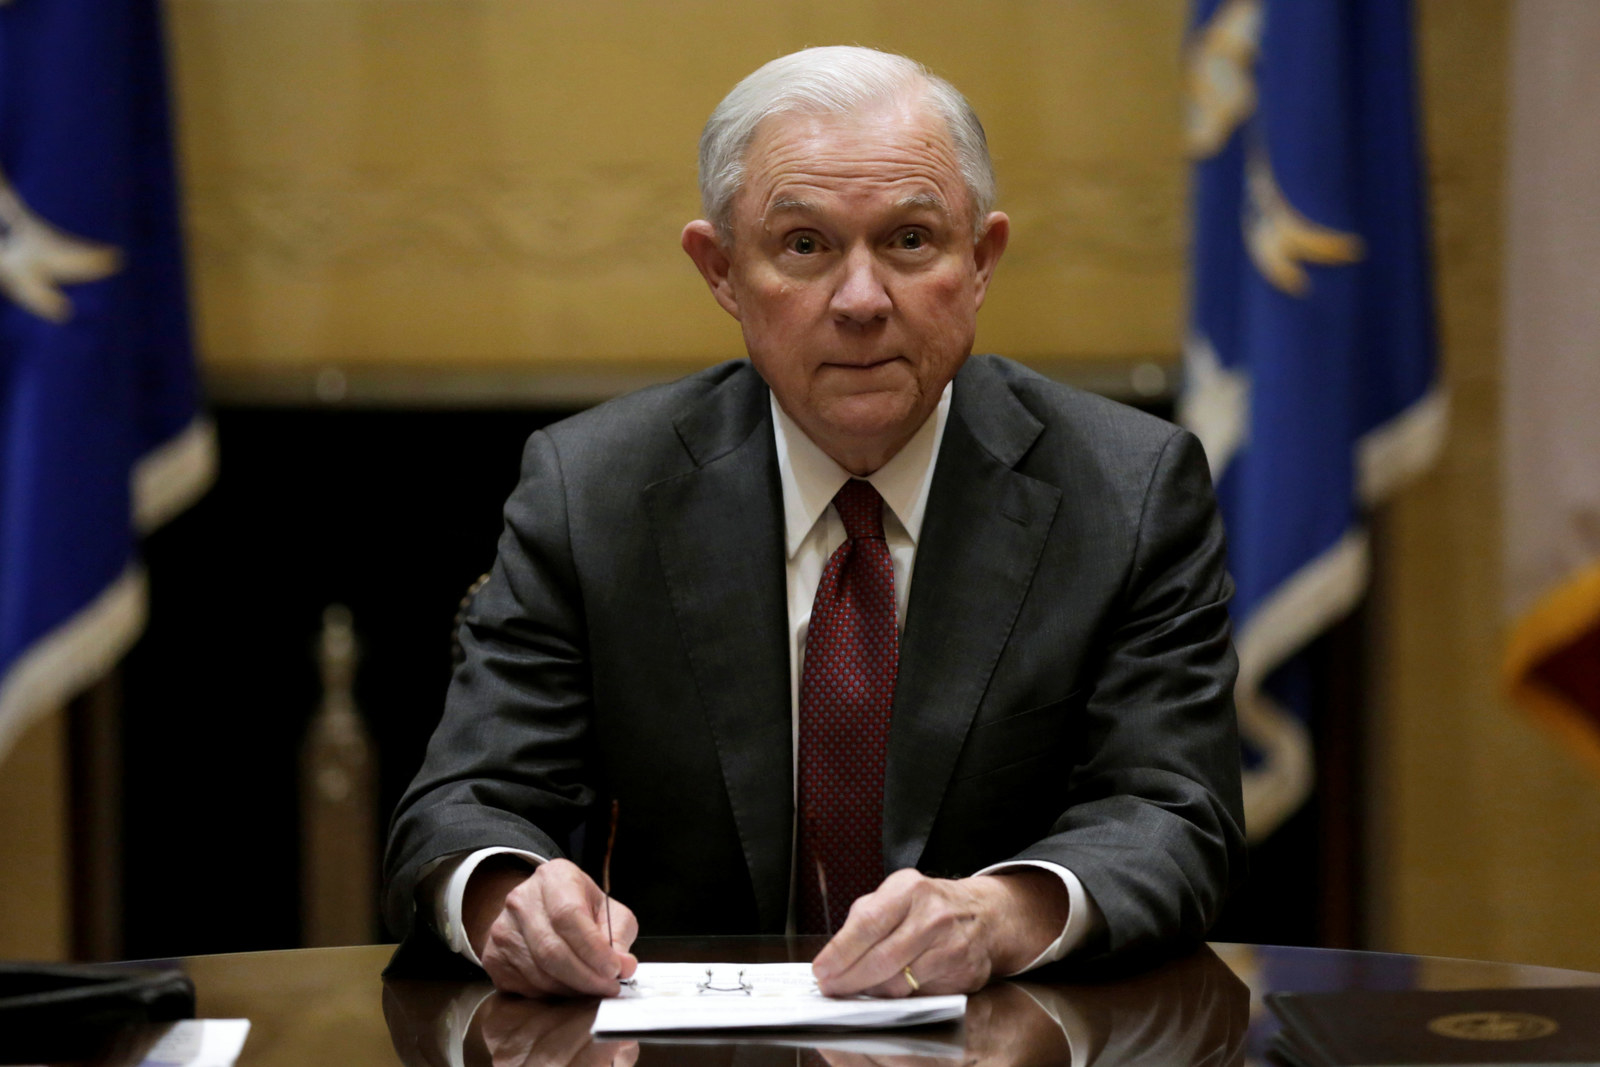 The Justice Department Is Taking A Step Back From Efforts To Protect Transgender People Under Existing Law